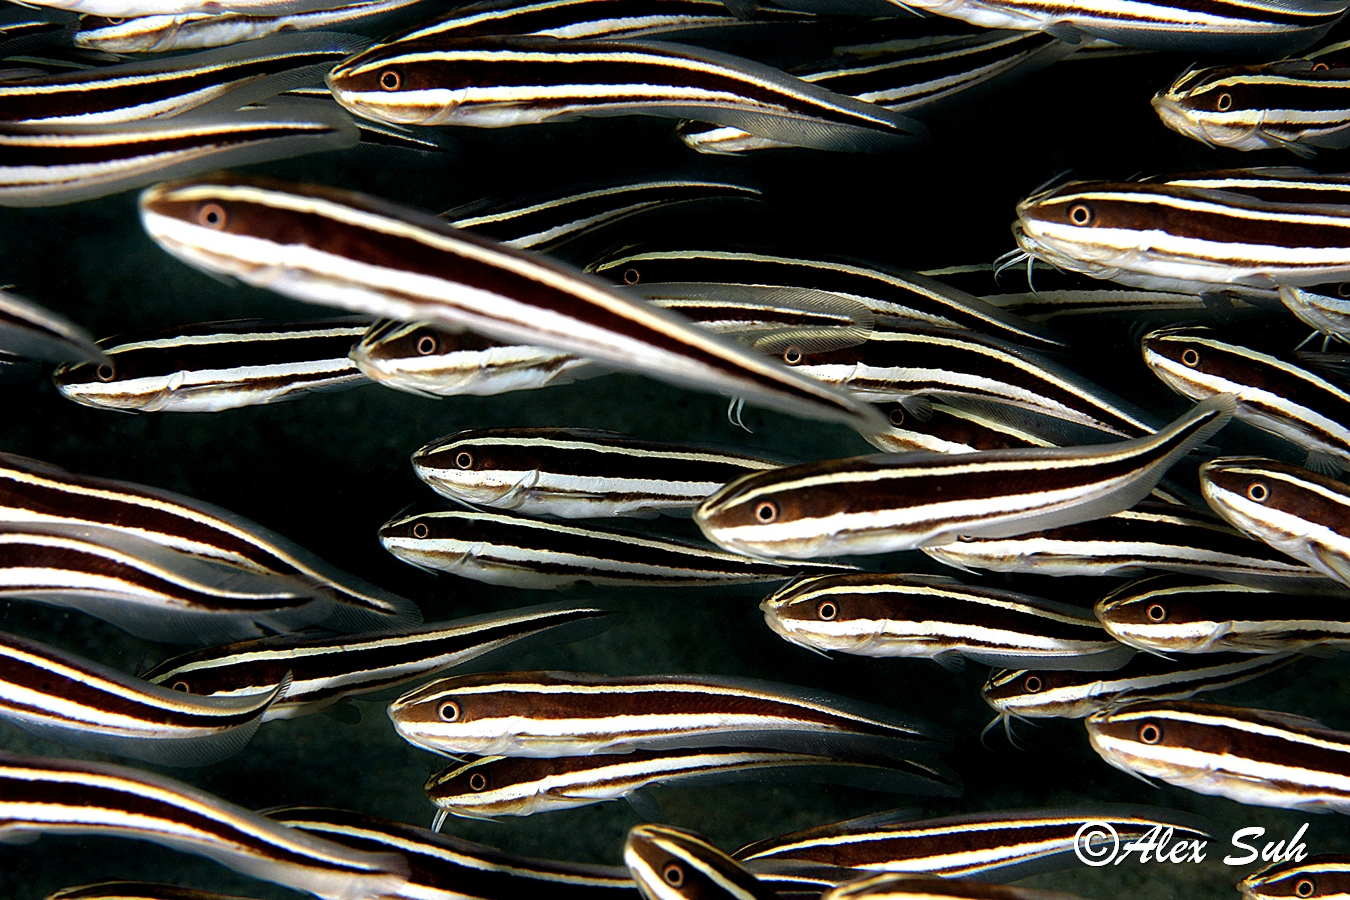 School of Stripped Catfish (Plotosus lineatus)